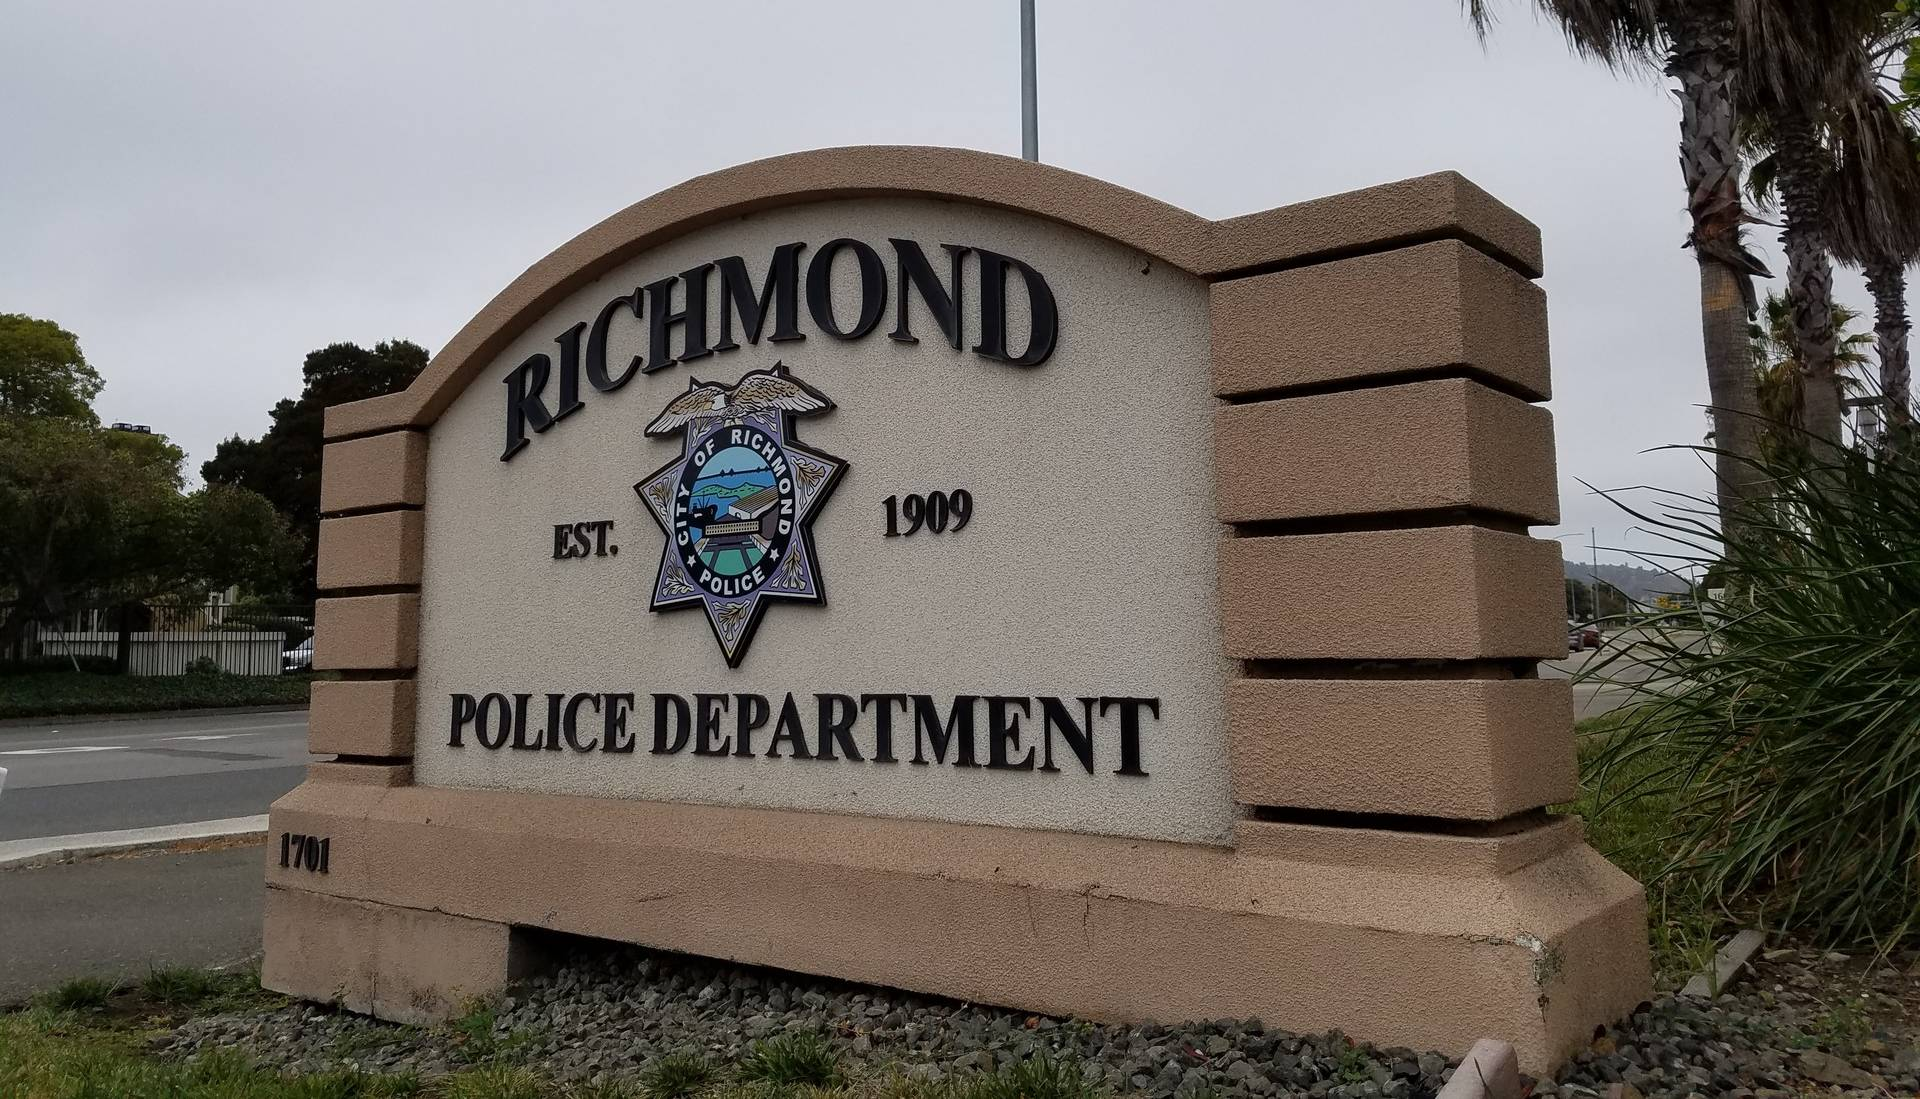 Police Chief: No Crimes by Richmond Officers in Sexual Exploitation Scandal